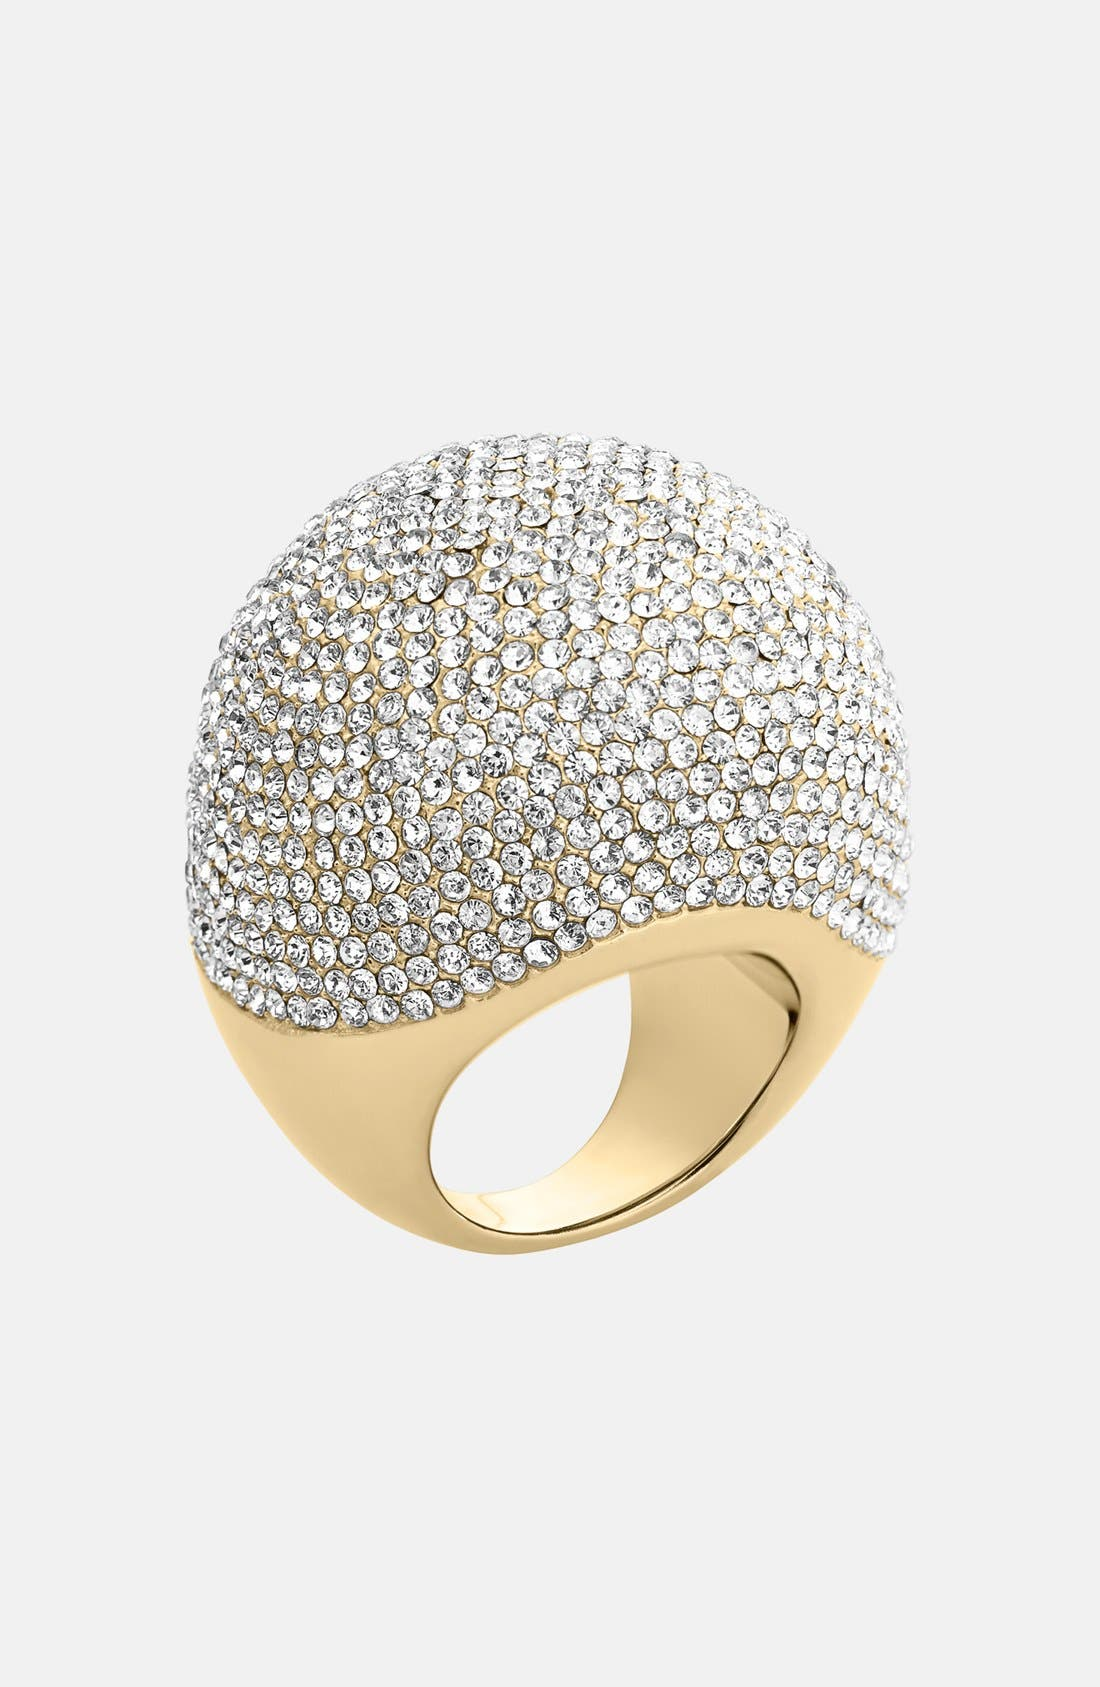 Michael Kors 'brilliance' Pavé Bubble Ring  Nordstrom. 4 Band Rings. Completion Rings. 3 Band Twist Wedding Rings. Red Rose Rings. Fish Rings. Threecarat Wedding Rings. Him And Her Wedding Rings. Professional Rings